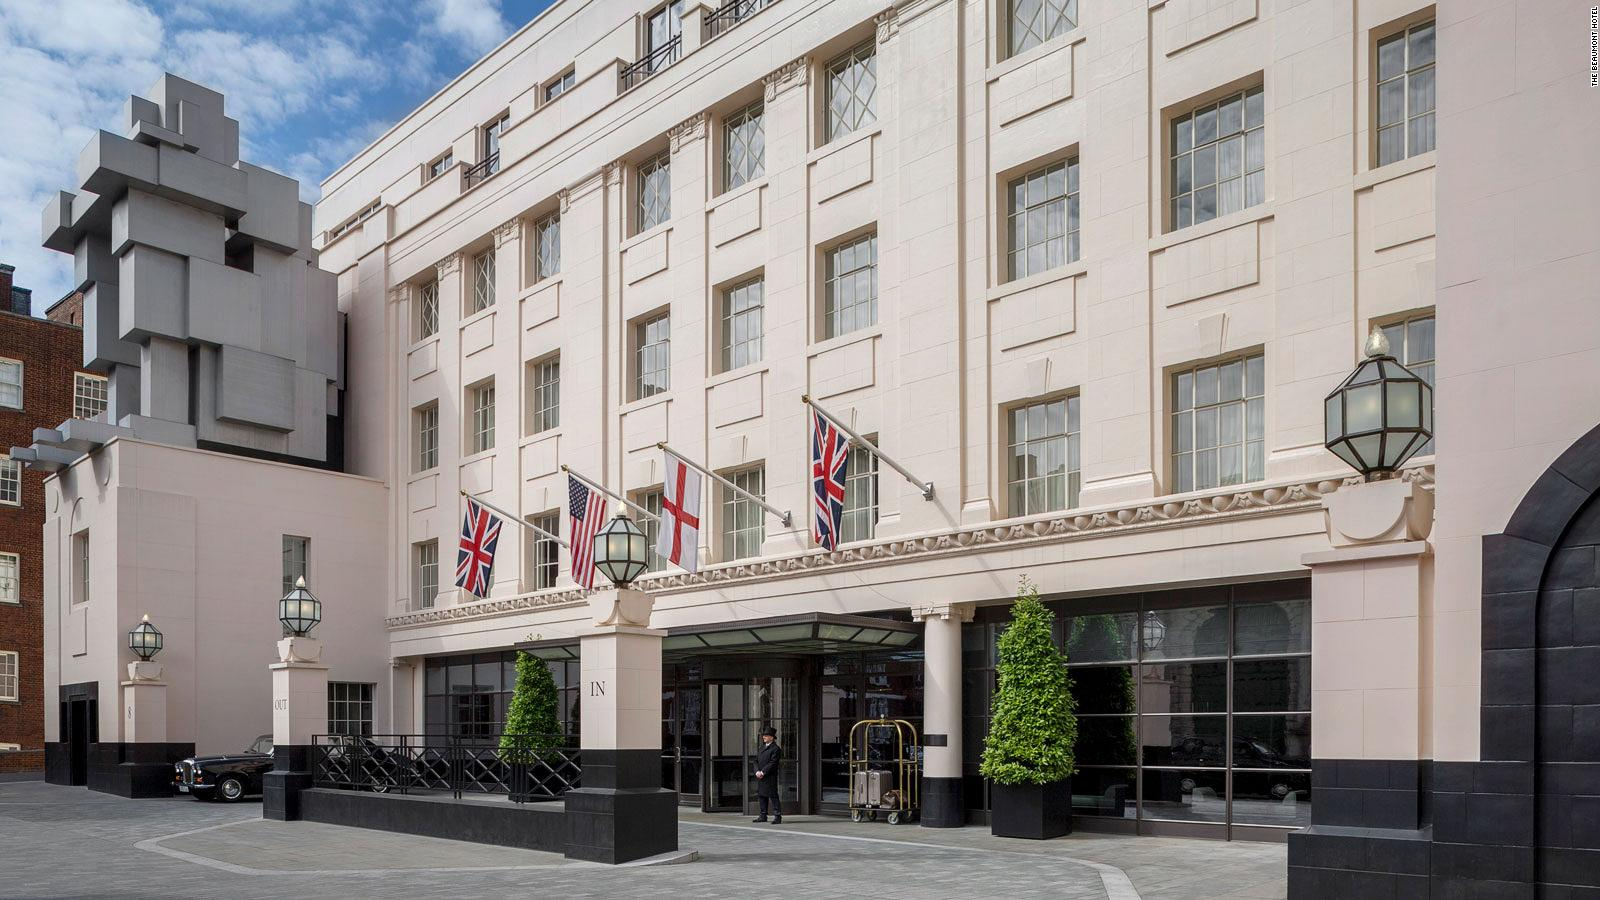 8 Best Luxury Hotels In London According To Lti Cnn Travel